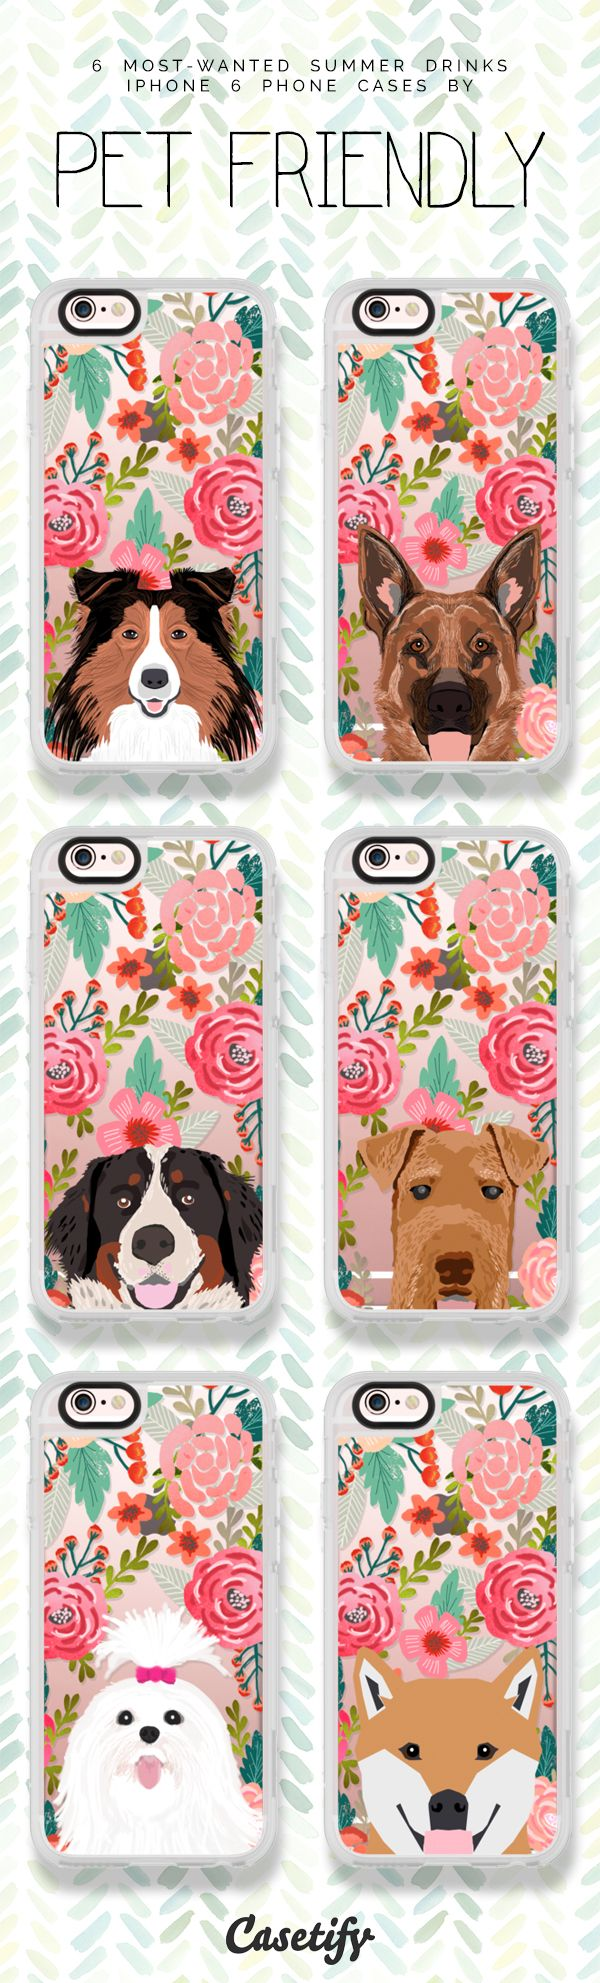 All time favourite dogs iPhone 6 phone case designs   Click through to see more animal protective see through iPhone phone case ideas >>> https://www.casetify.com/petfriendly/collection #floral   @casetify